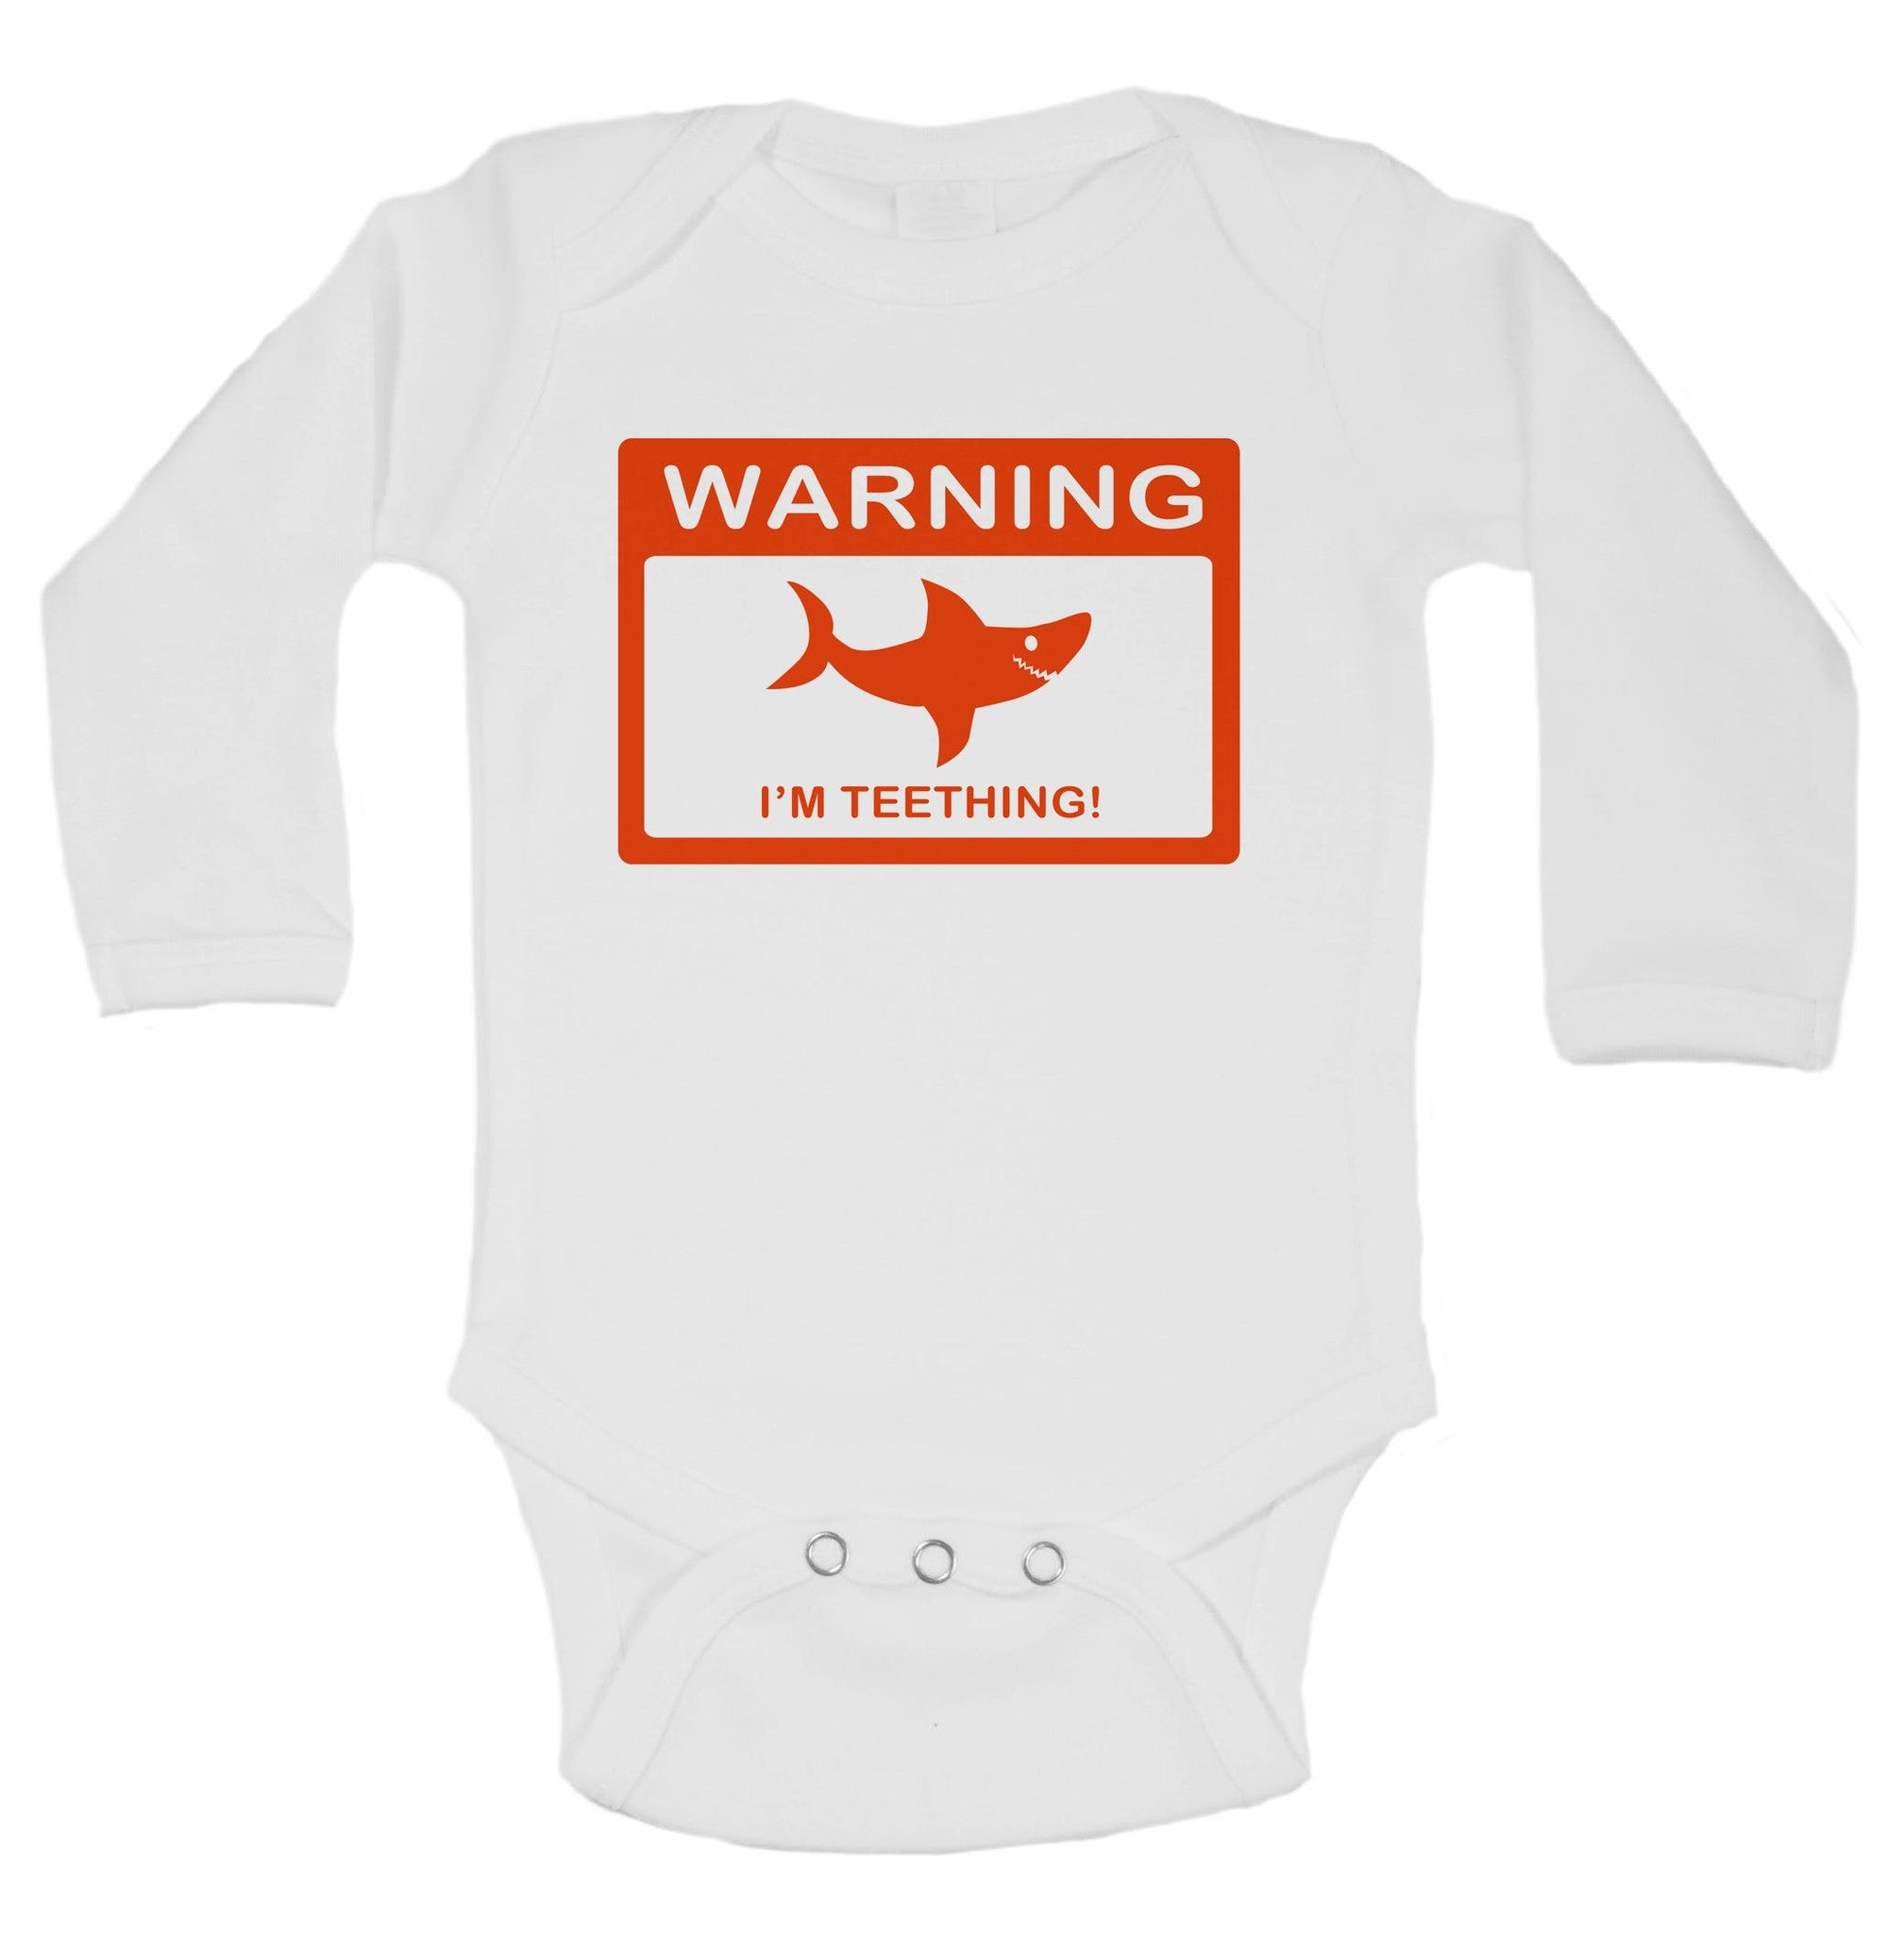 Warning I'm Teething! Funny Kids Onesie - B10 - Funny Shirts Tank Tops Burnouts and Triblends  - 2